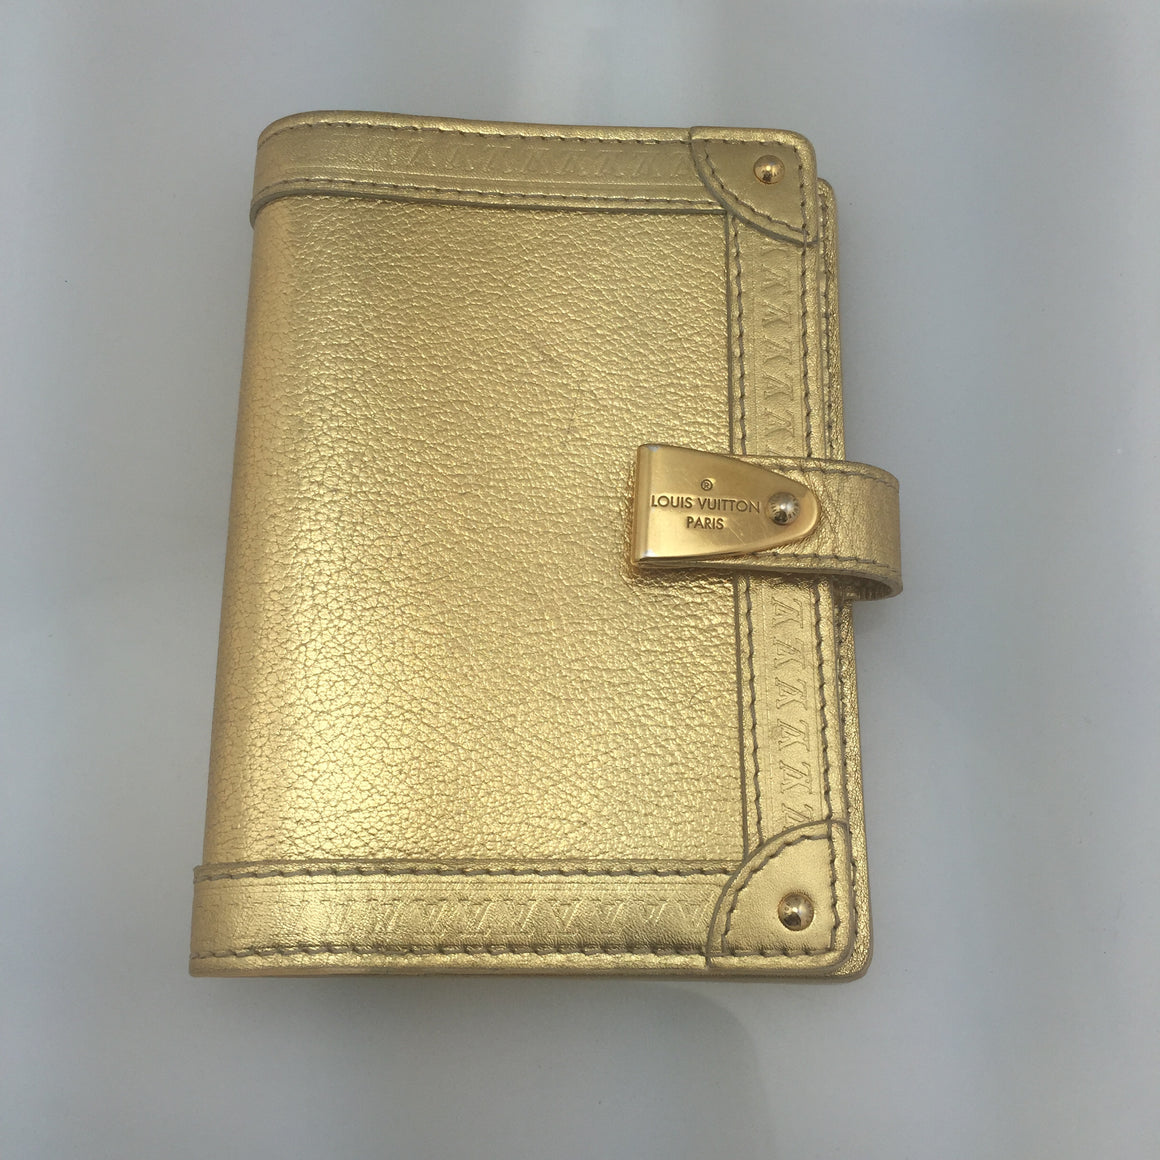 Louis Vuitton Suhali Leather Agenda Book! - New York Authentic Designer - Louis Vuitton